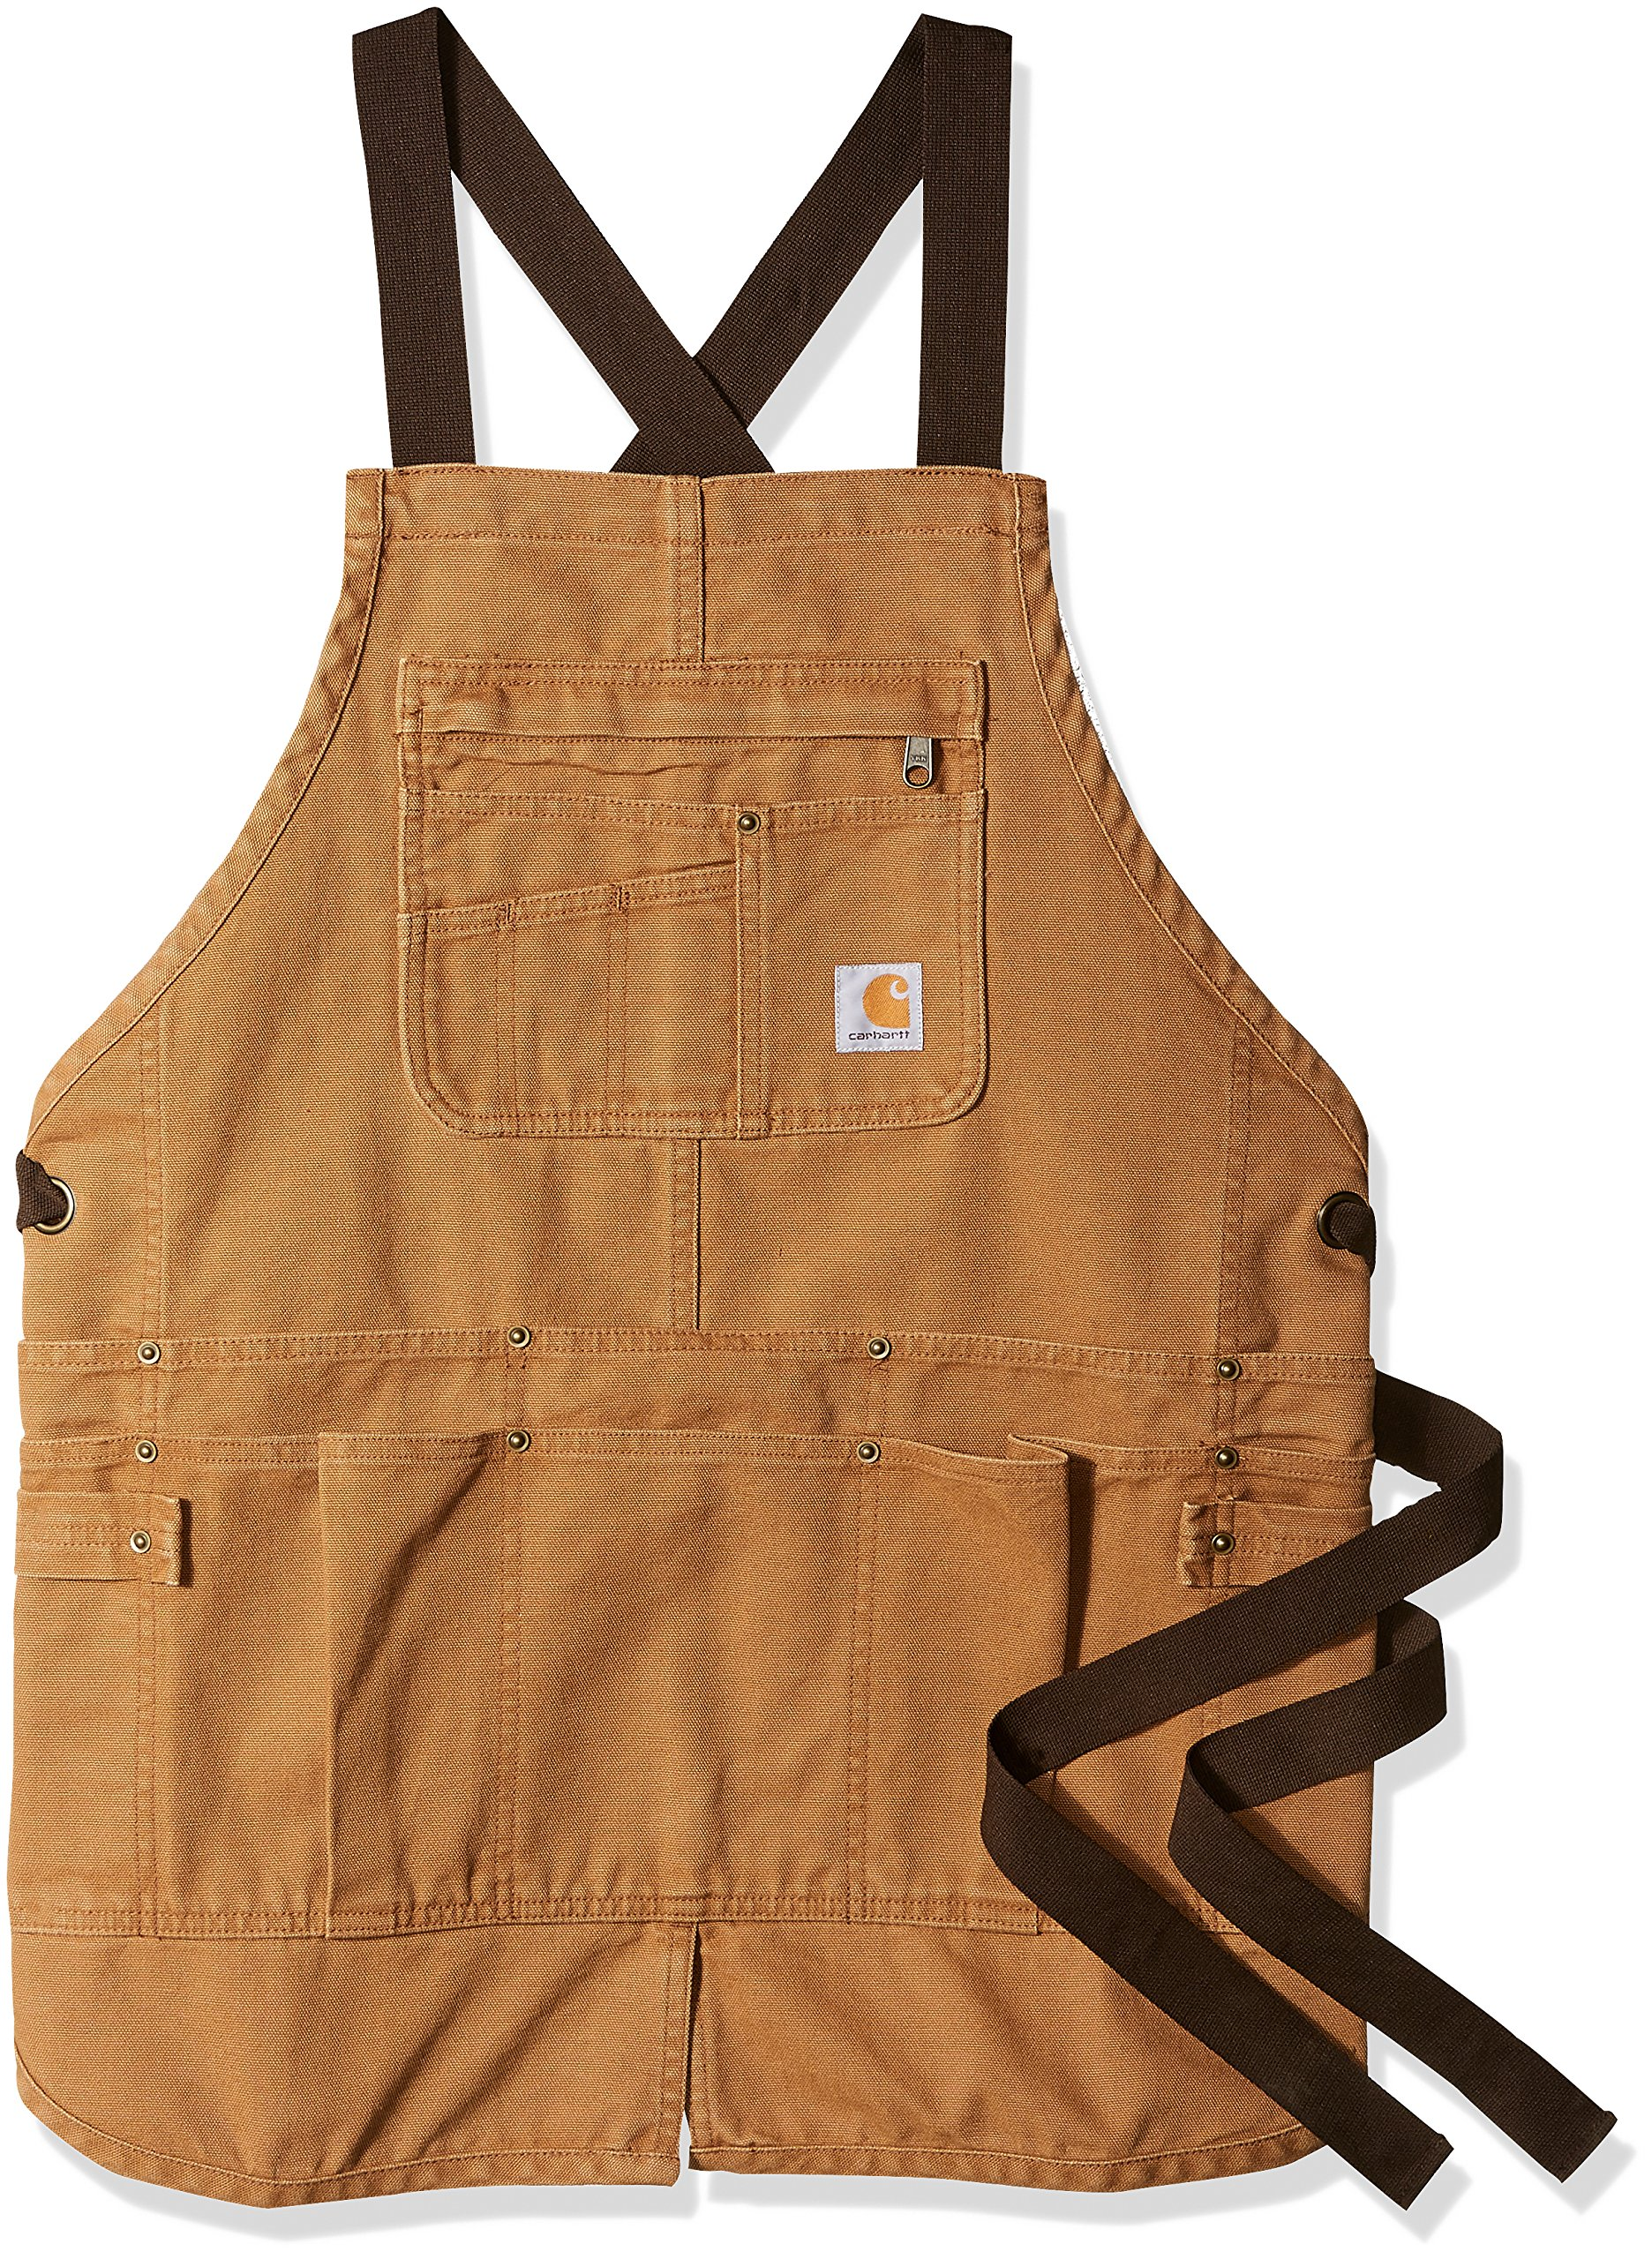 Carhartt Women's Weathered Duck Wildwood Apron, Brown, OFA